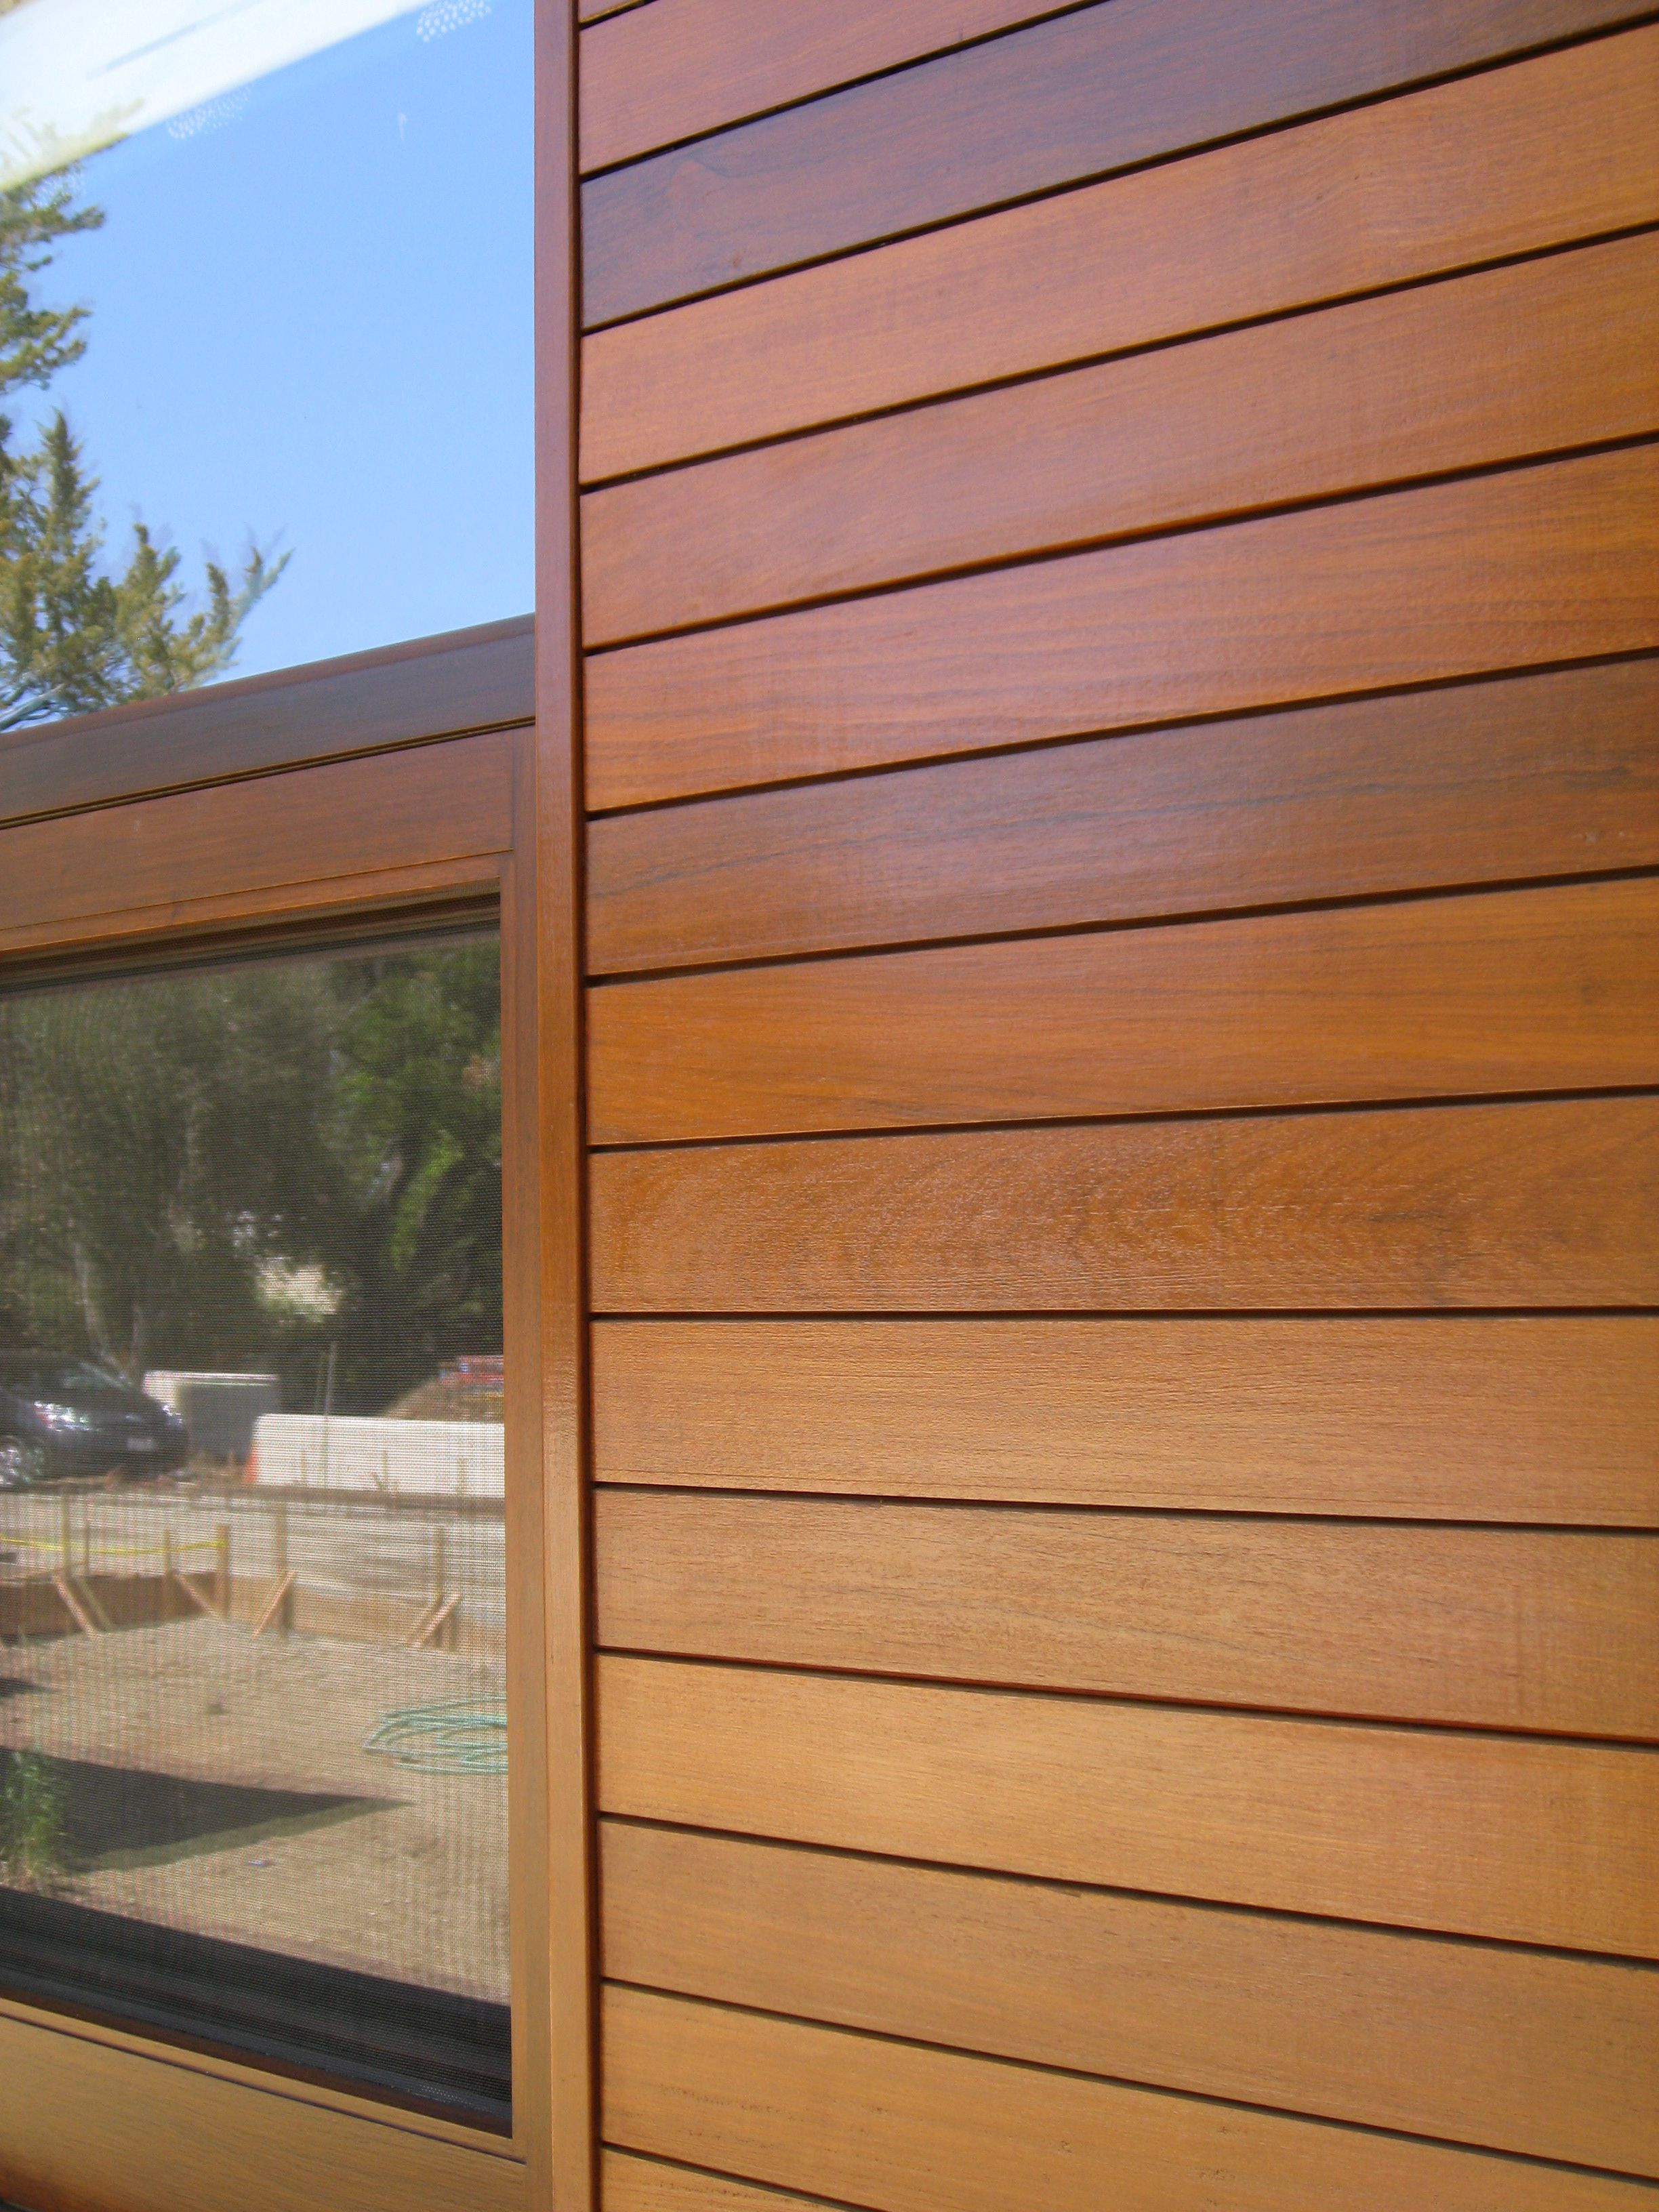 Climate shield rain screen wood siding system ipe